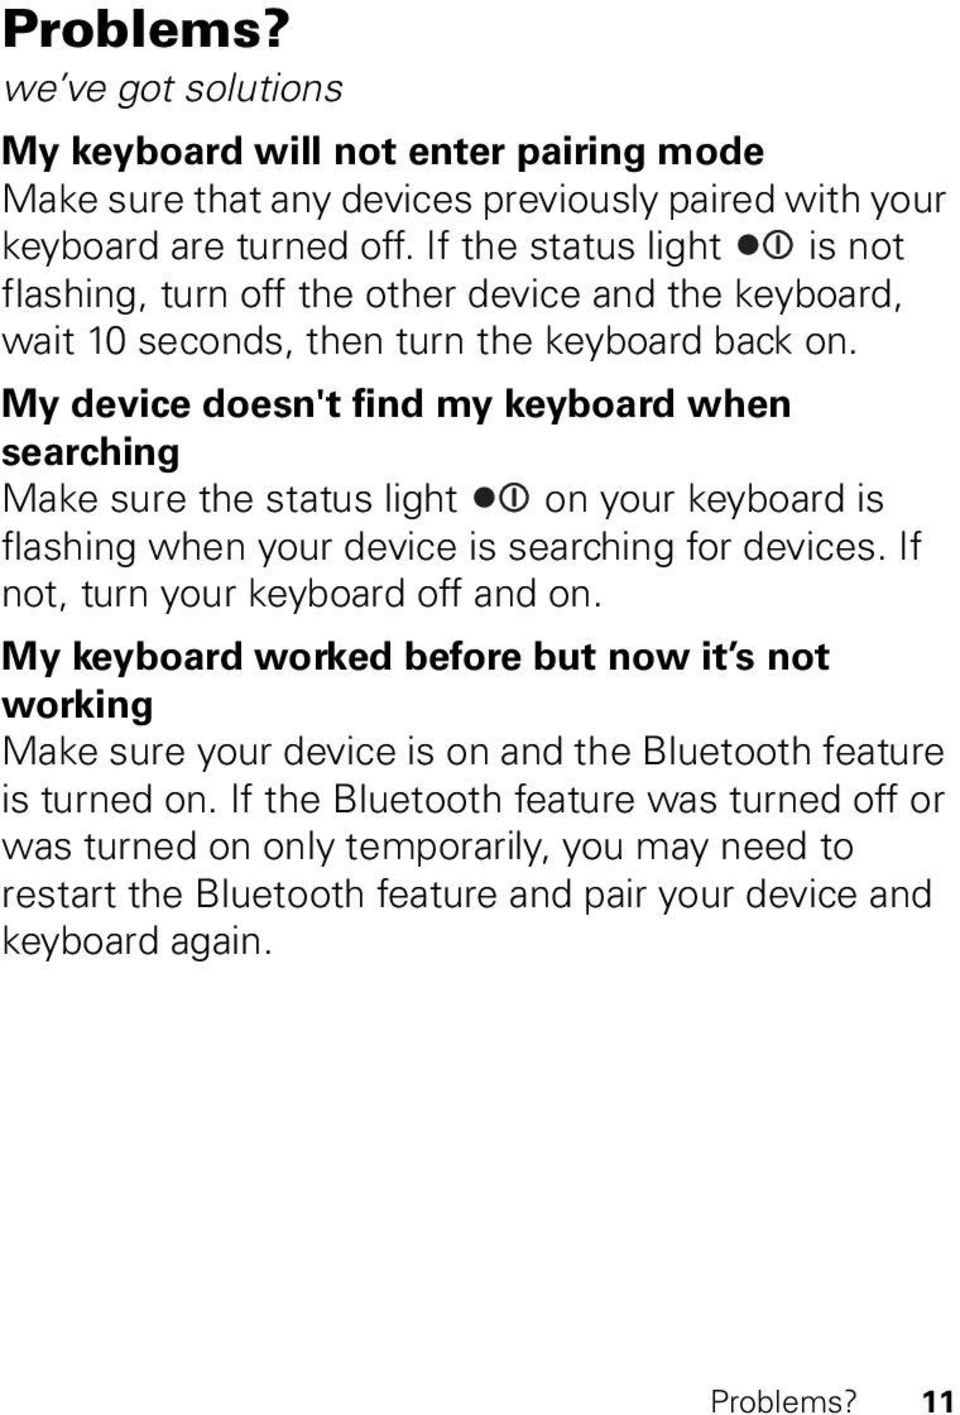 My device doesn't find my keyboard when searching Make sure the status light on your keyboard is flashing when your device is searching for devices. If not, turn your keyboard off and on.